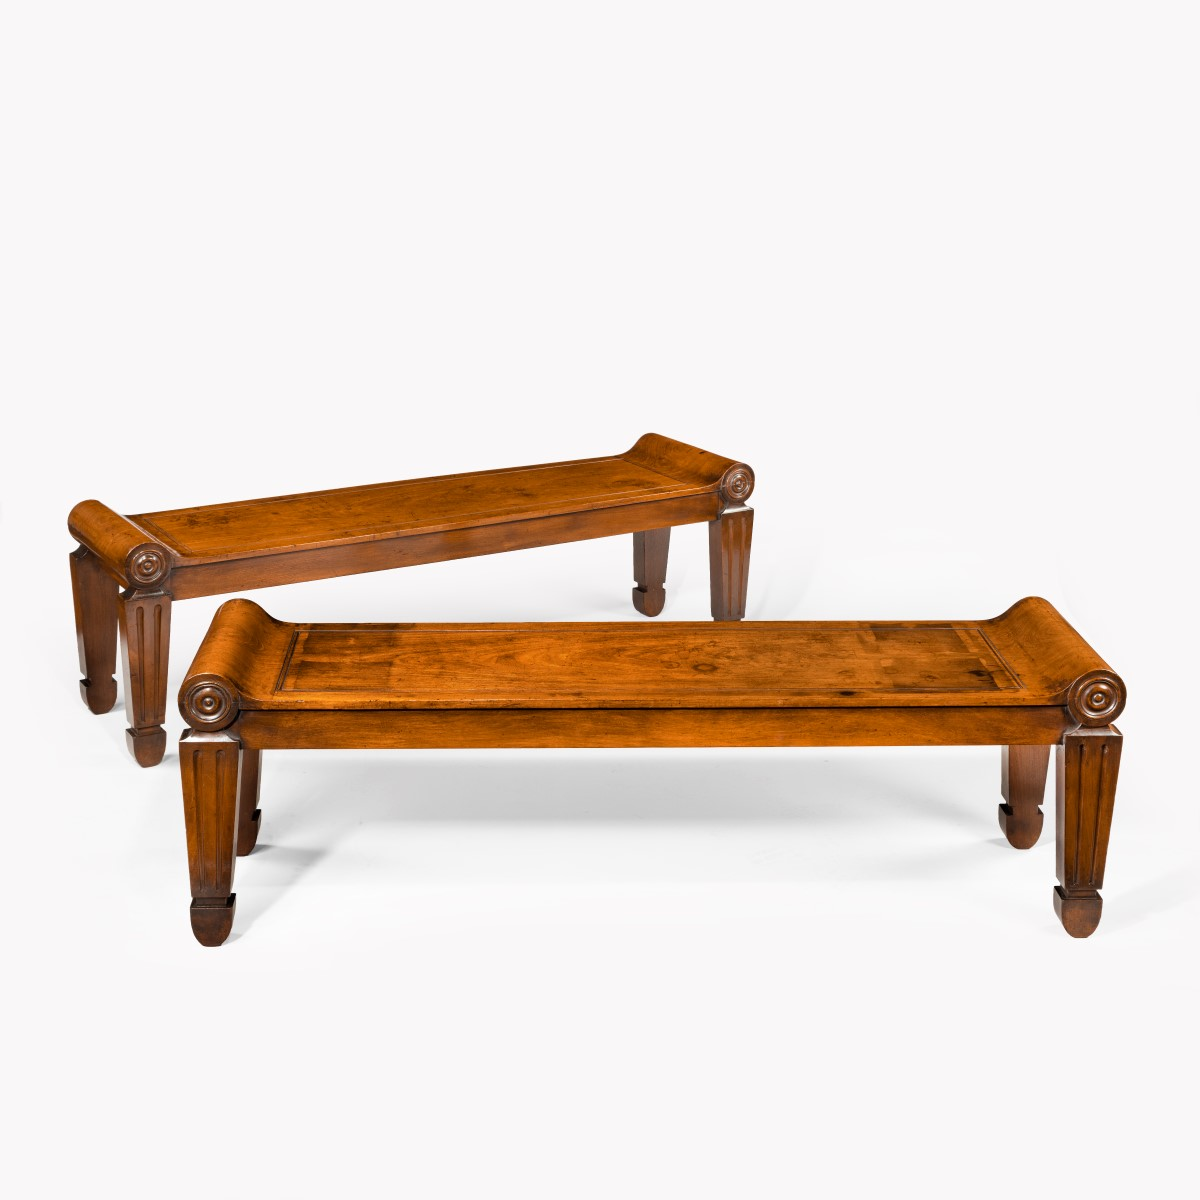 A pair of George III mahogany hall benches in the manner of Marsh & Tatham